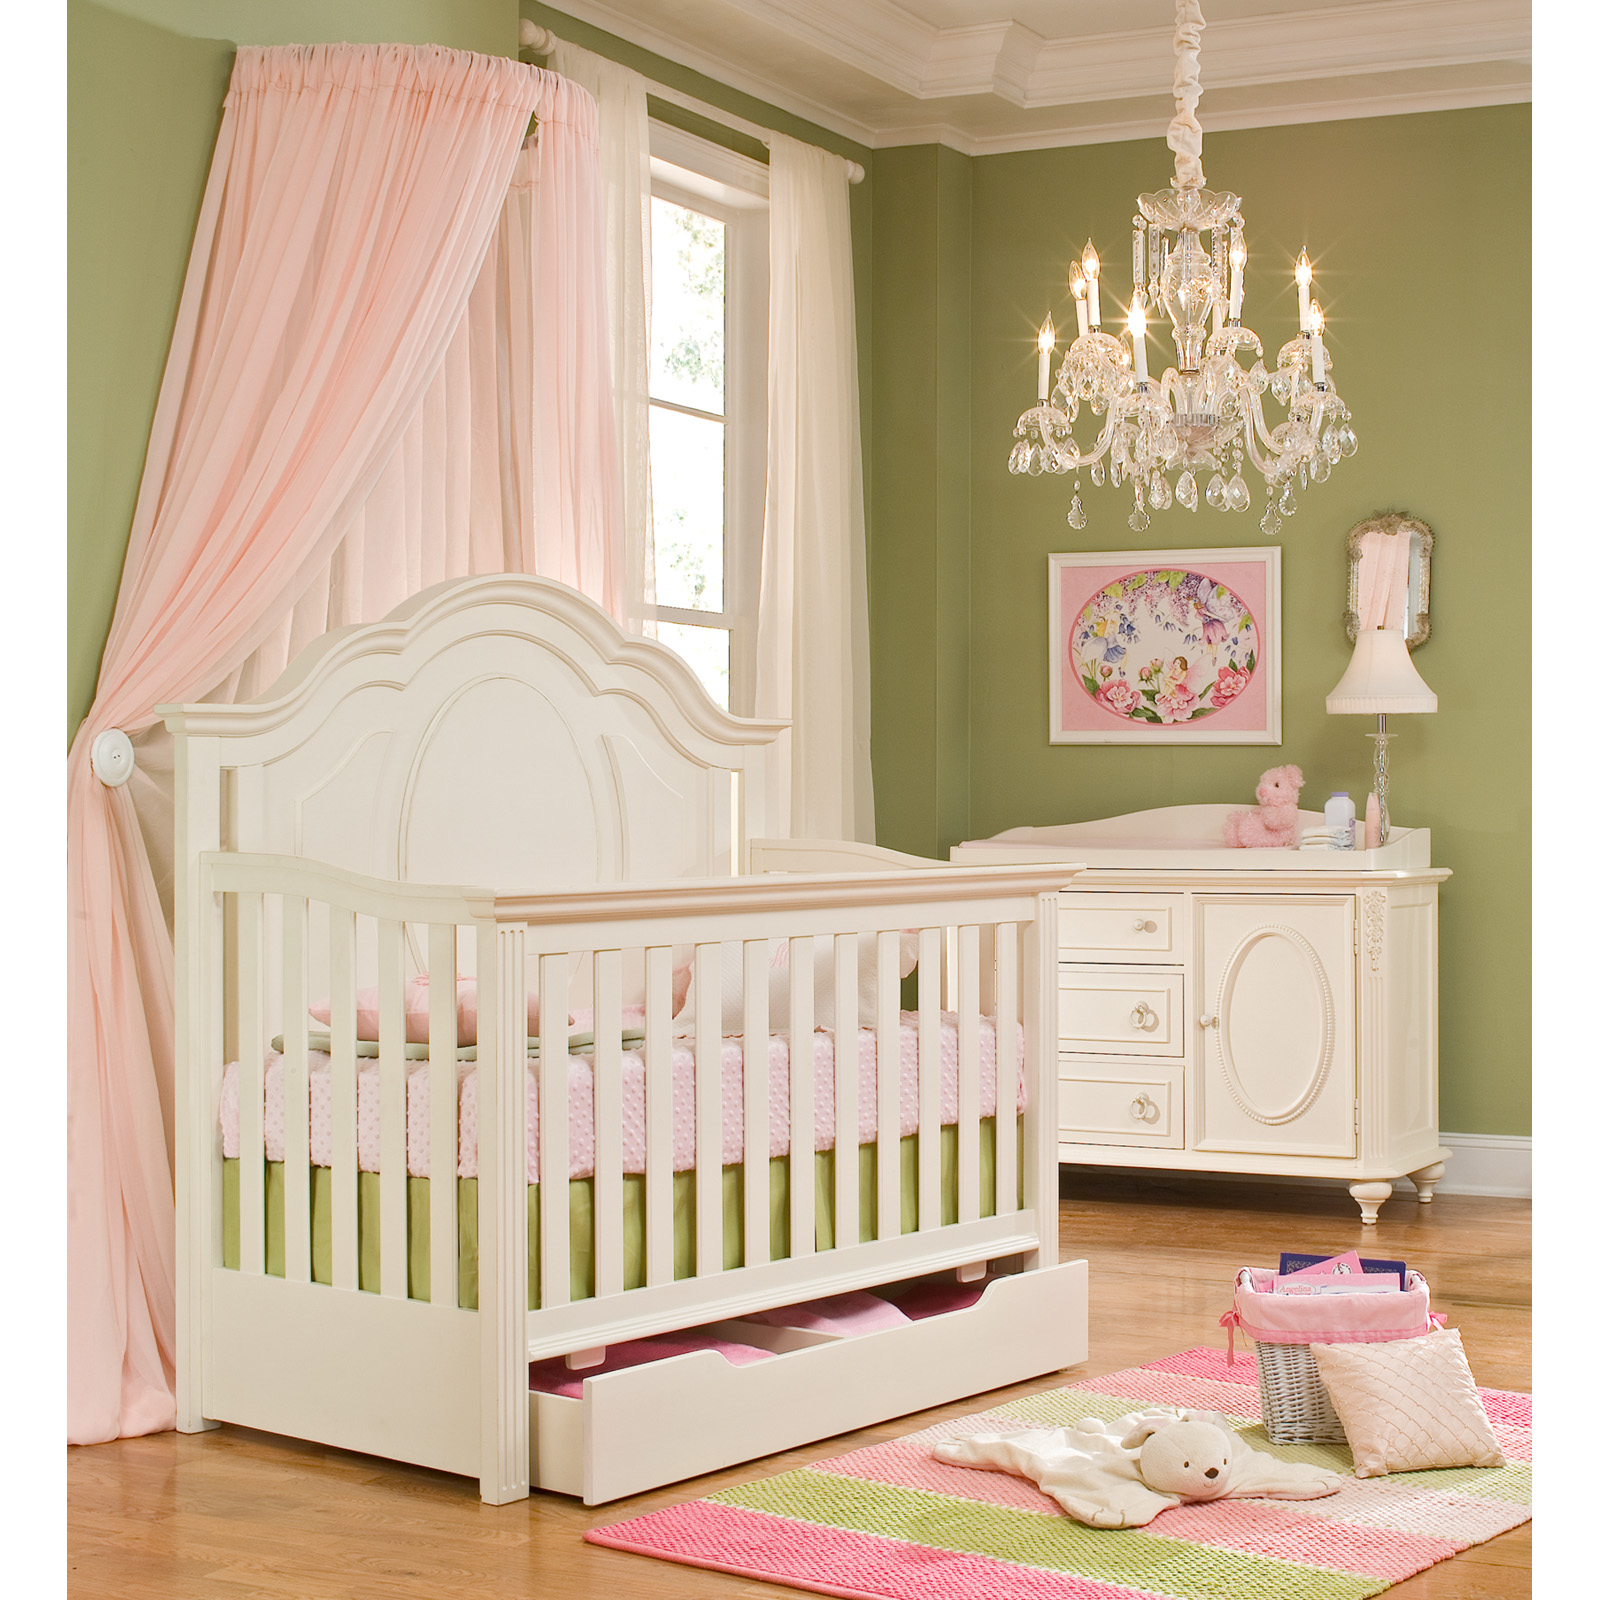 Legacy Classic Bedroom Furniture Legacy Classics Enchantment 4 In 1 Convertible Crib Collection At